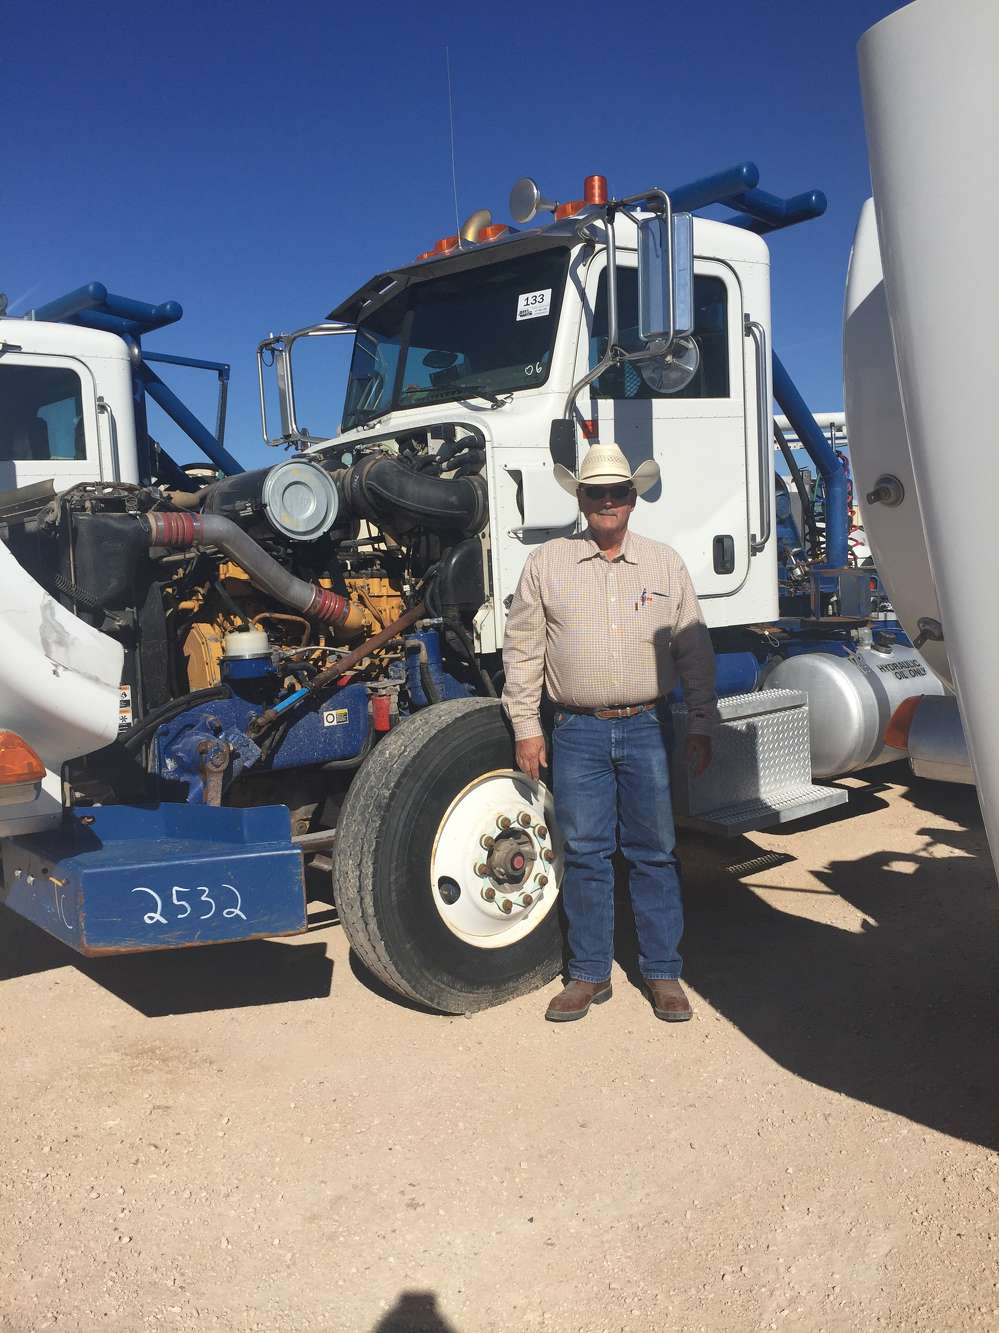 Steve Murphy of Bonham, Texas, inspects one of the many truck tractors sold in the Stanton, Texas, auction.